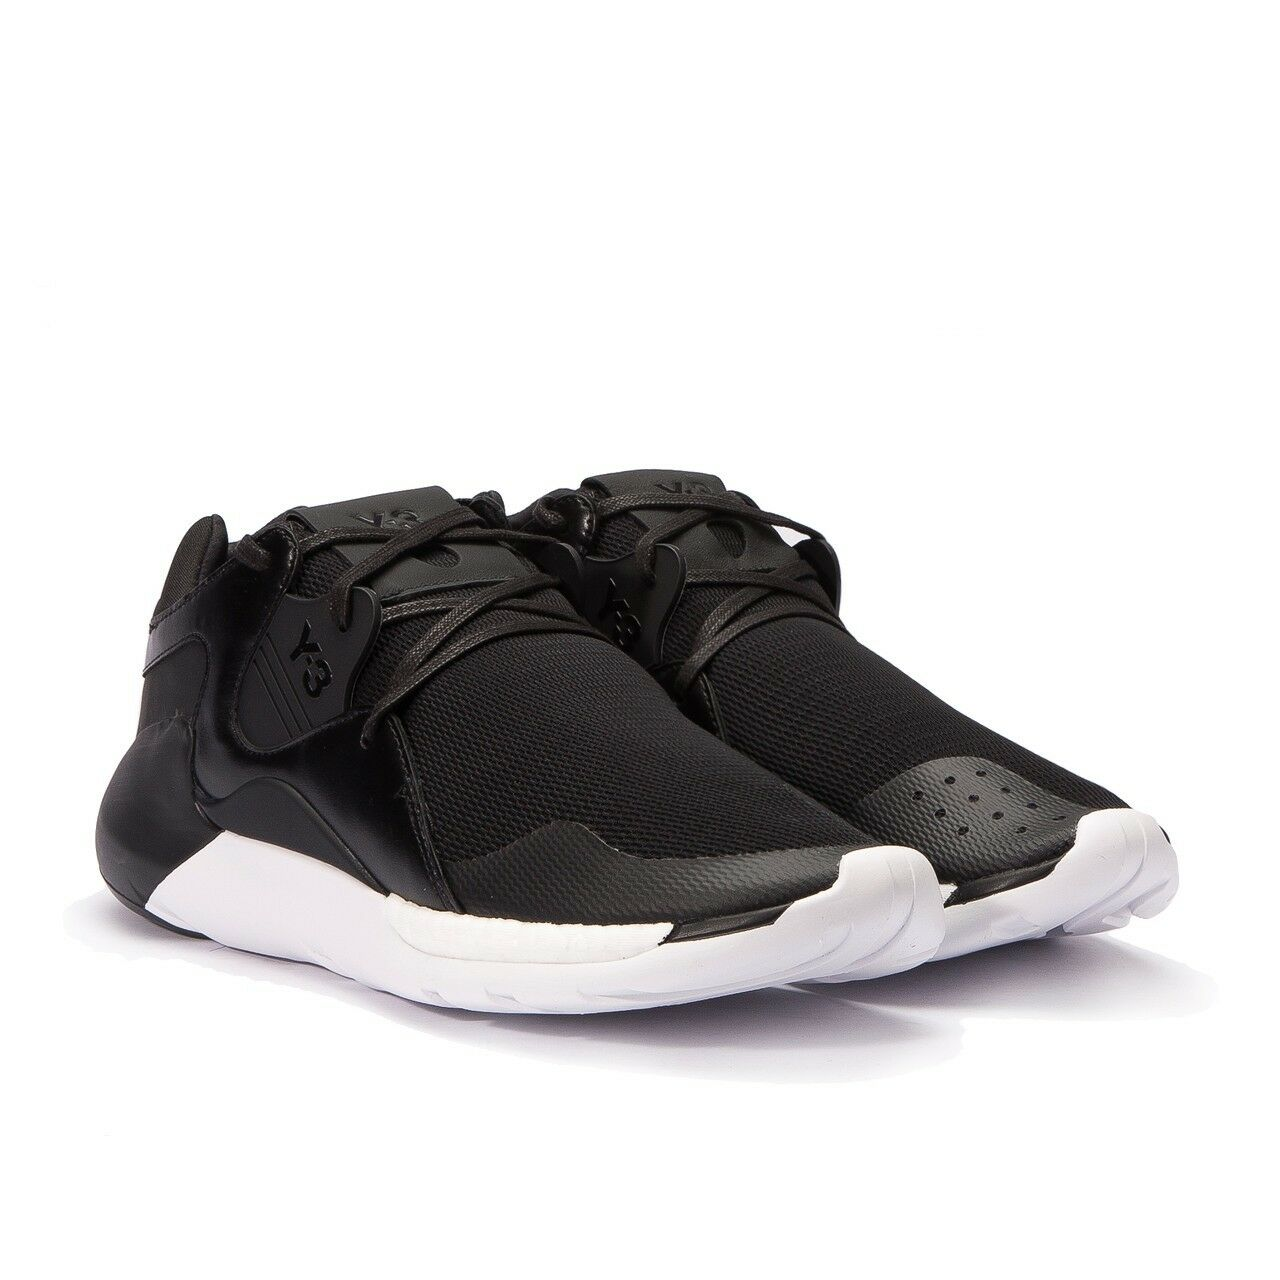 Adidas Y-3 QR courir - noir - TO rougeUCED TO - CLEAR WAS 265 NOW 160 6cd052